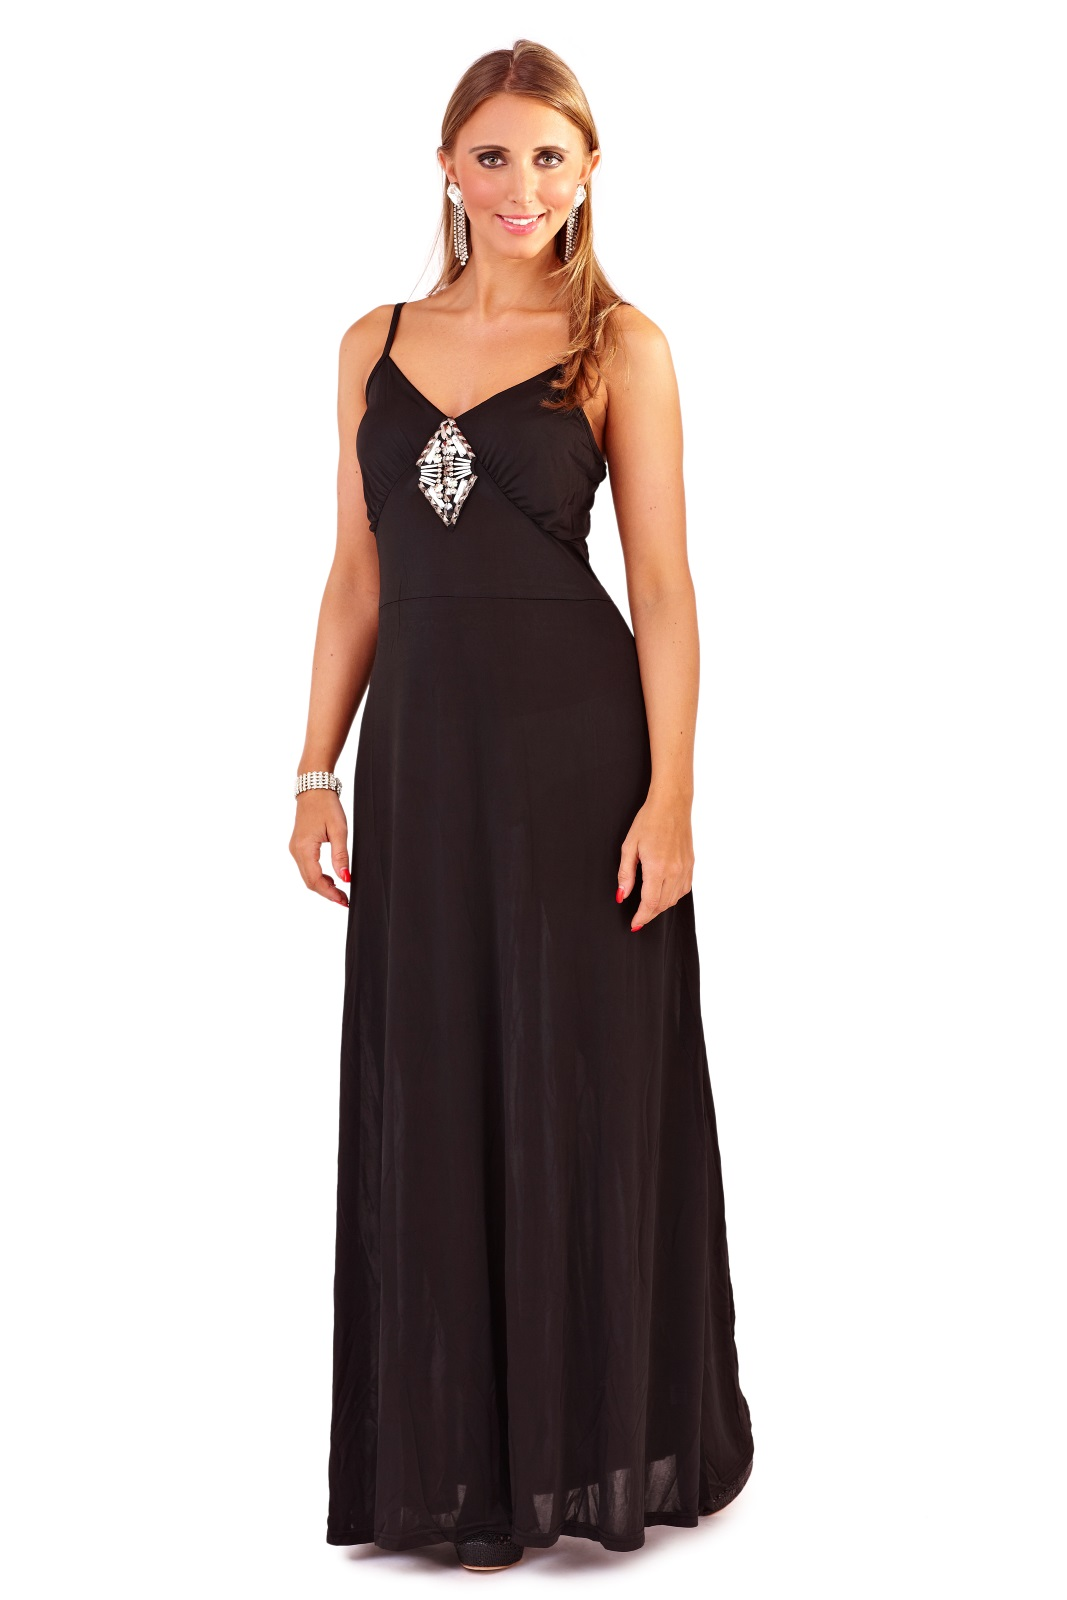 Womens Maxi Dress Full Length Summer Party Evening Dress ...